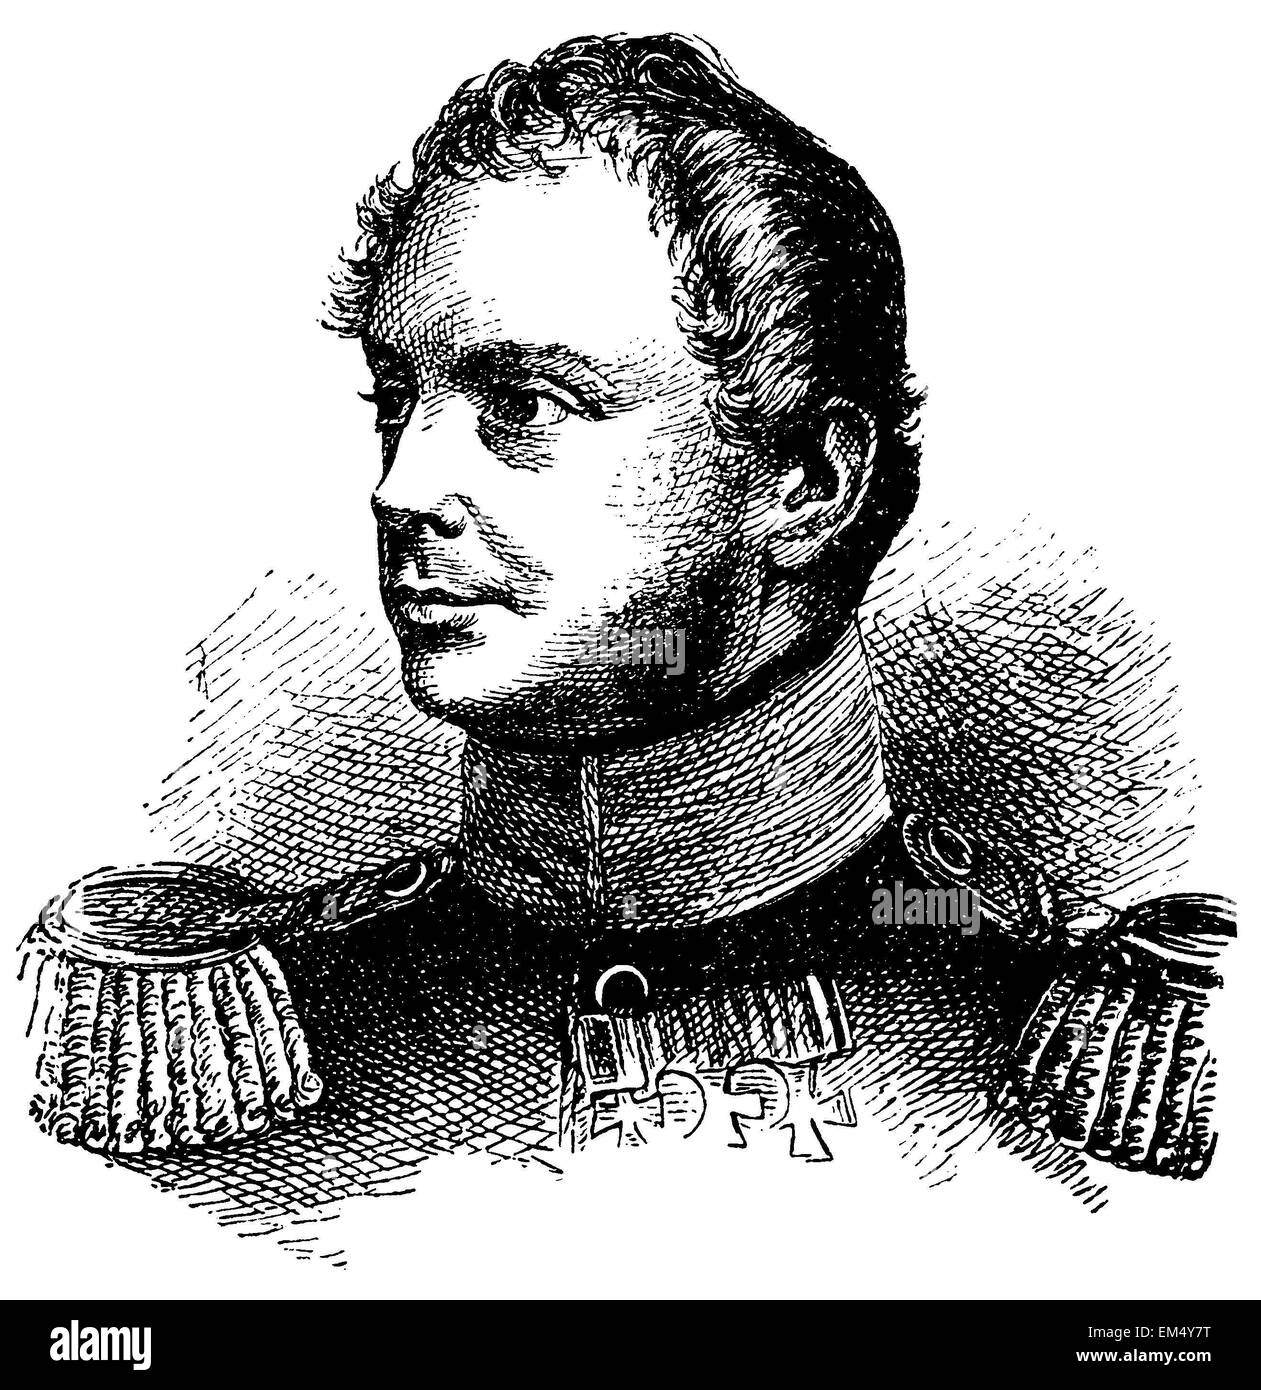 King Frederick William IV (born October 15, 1795 , died January 2, 1861 ) - Stock Image